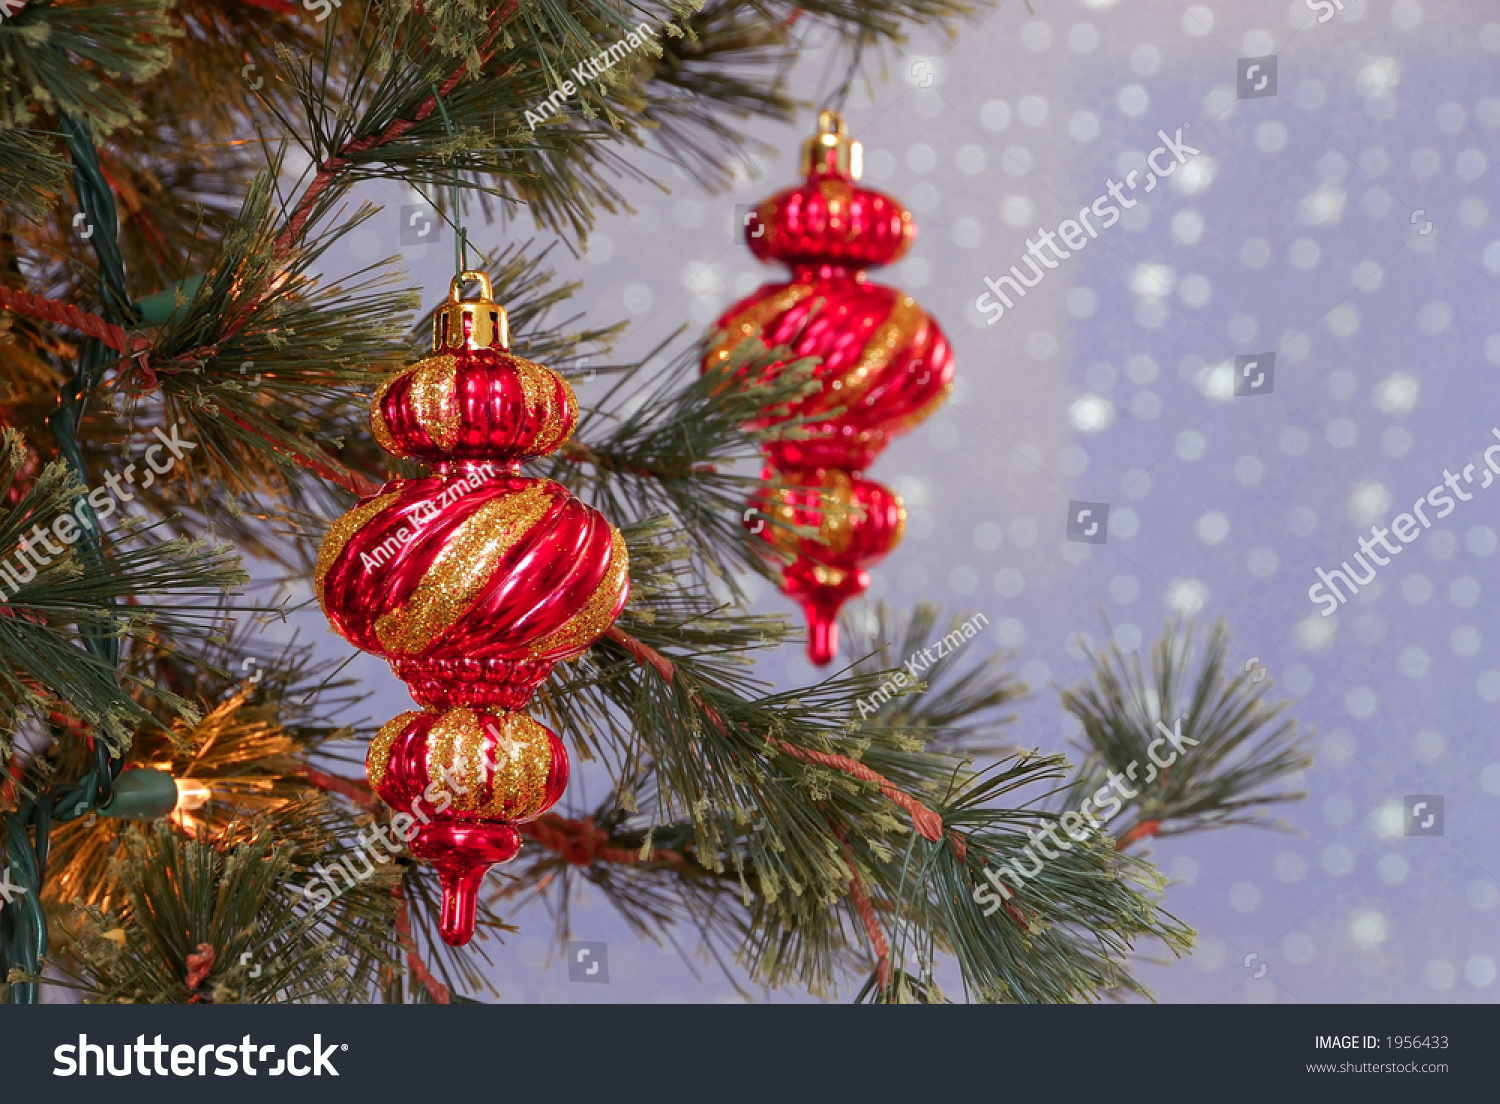 Holiday Pine Tree With A Gold And Red